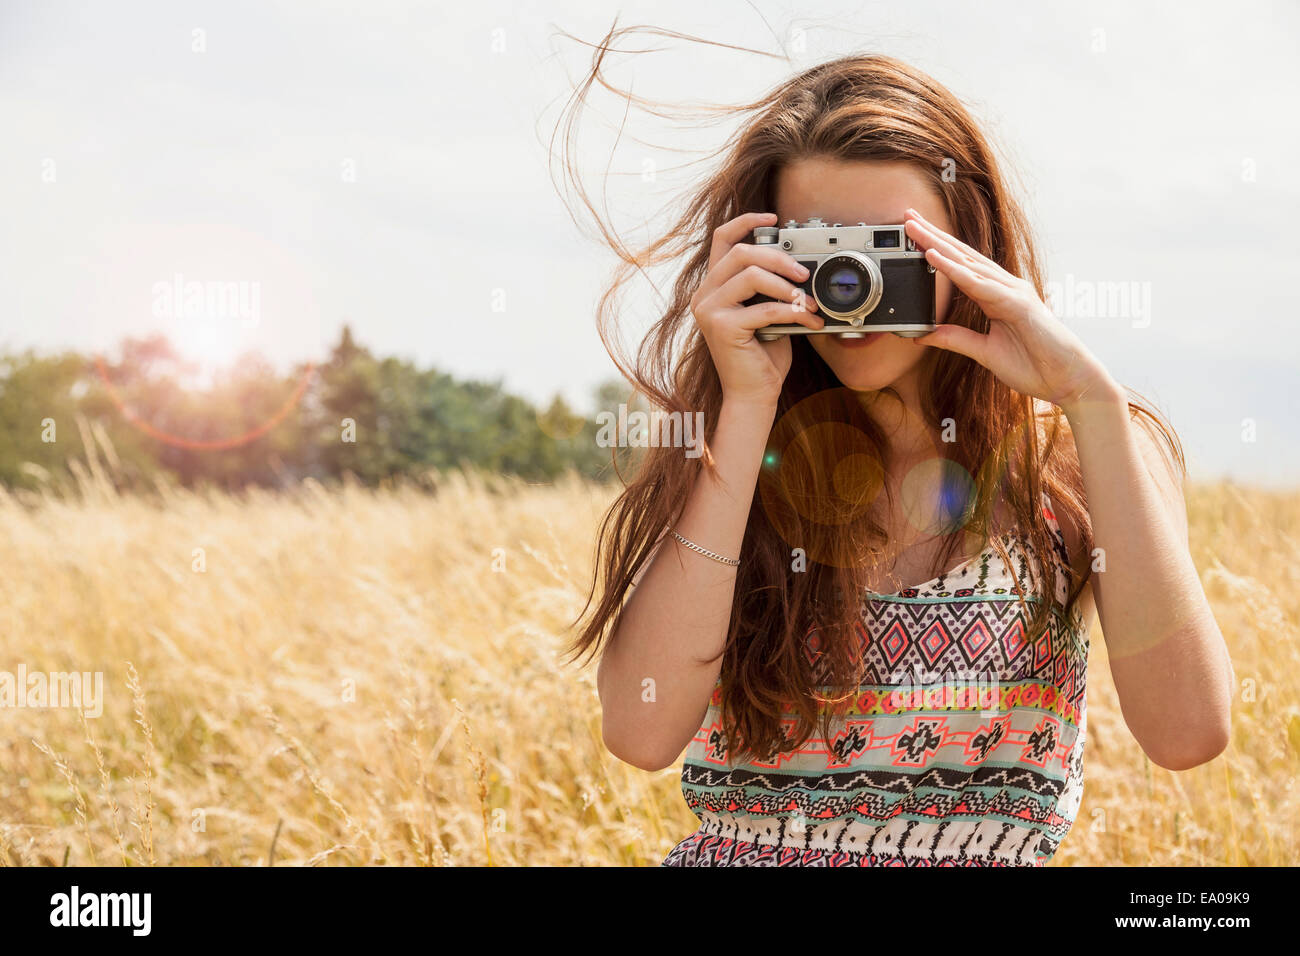 Young woman taking photo with vintage camera in field - Stock Image